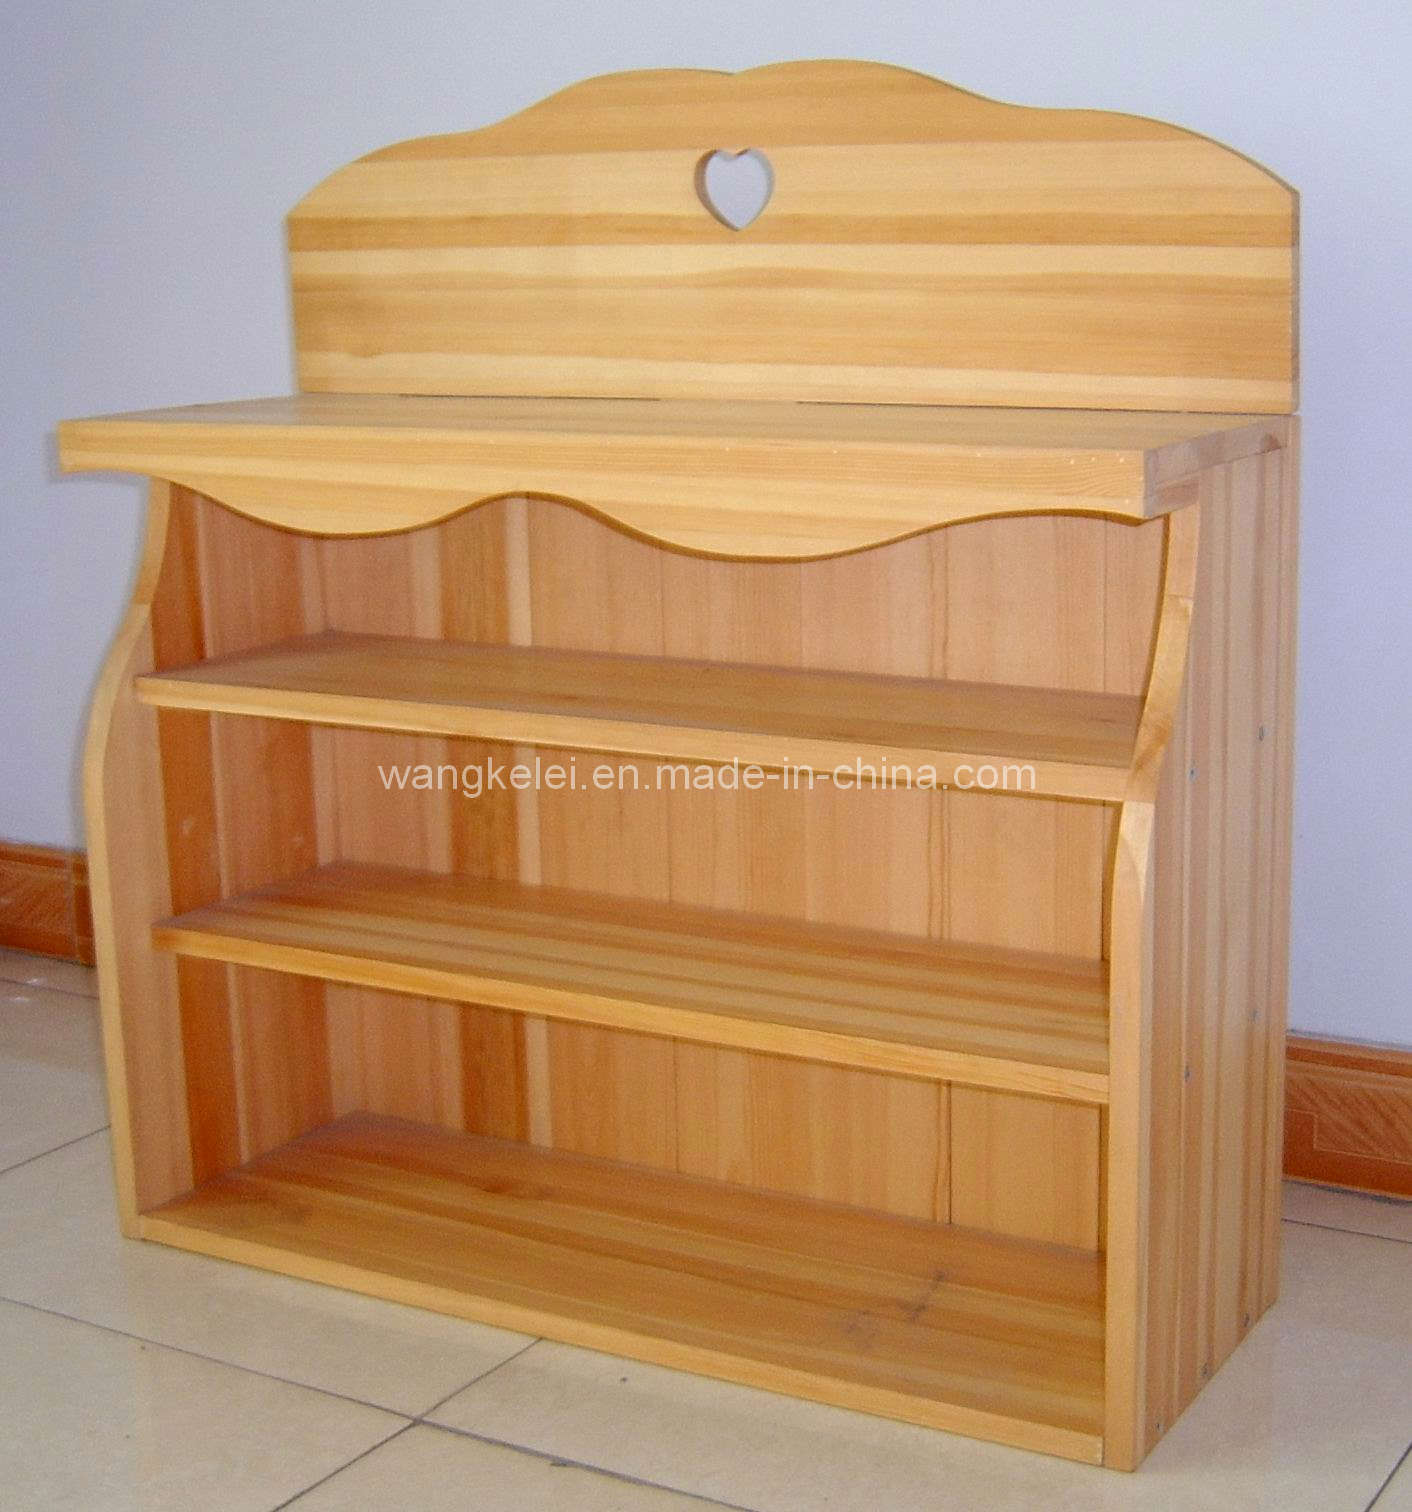 China wooden furniture cj 0225 china wooden furniture Www wooden furniture com